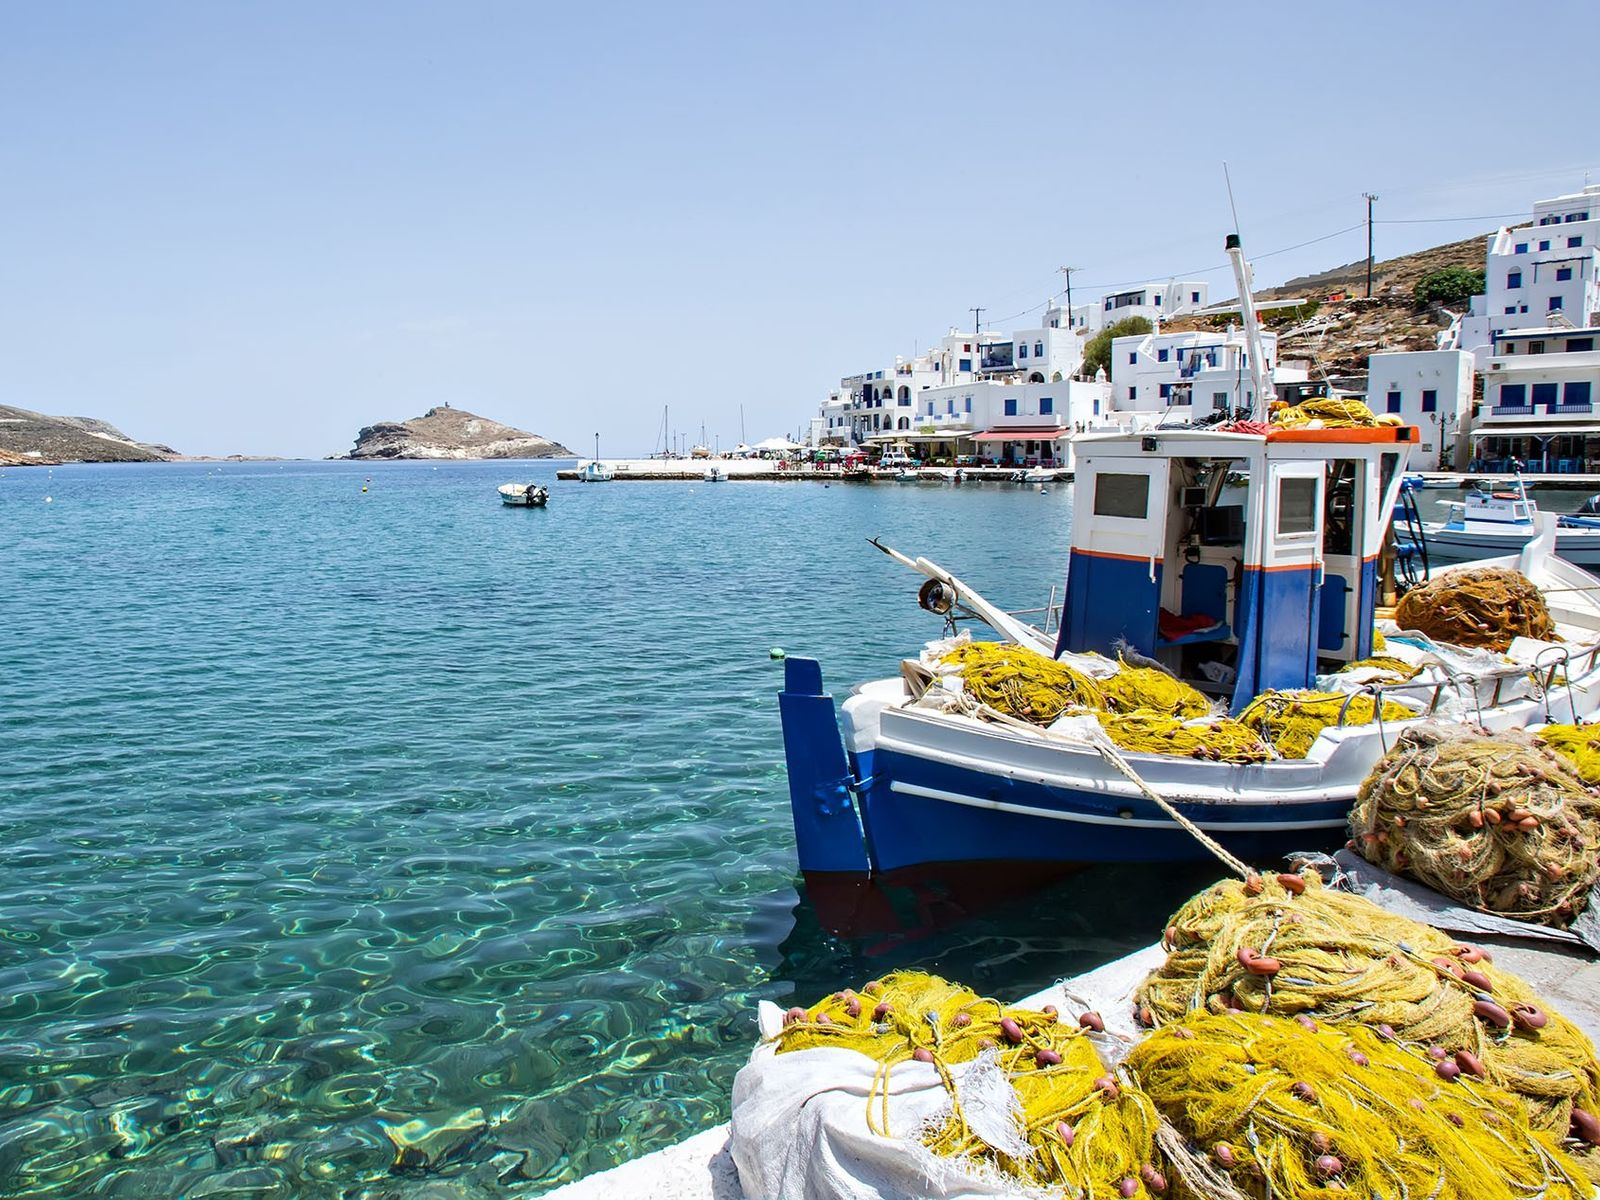 In the north of the Cyclades archipelago, in the Aegean Sea, Tinos is home to the ...